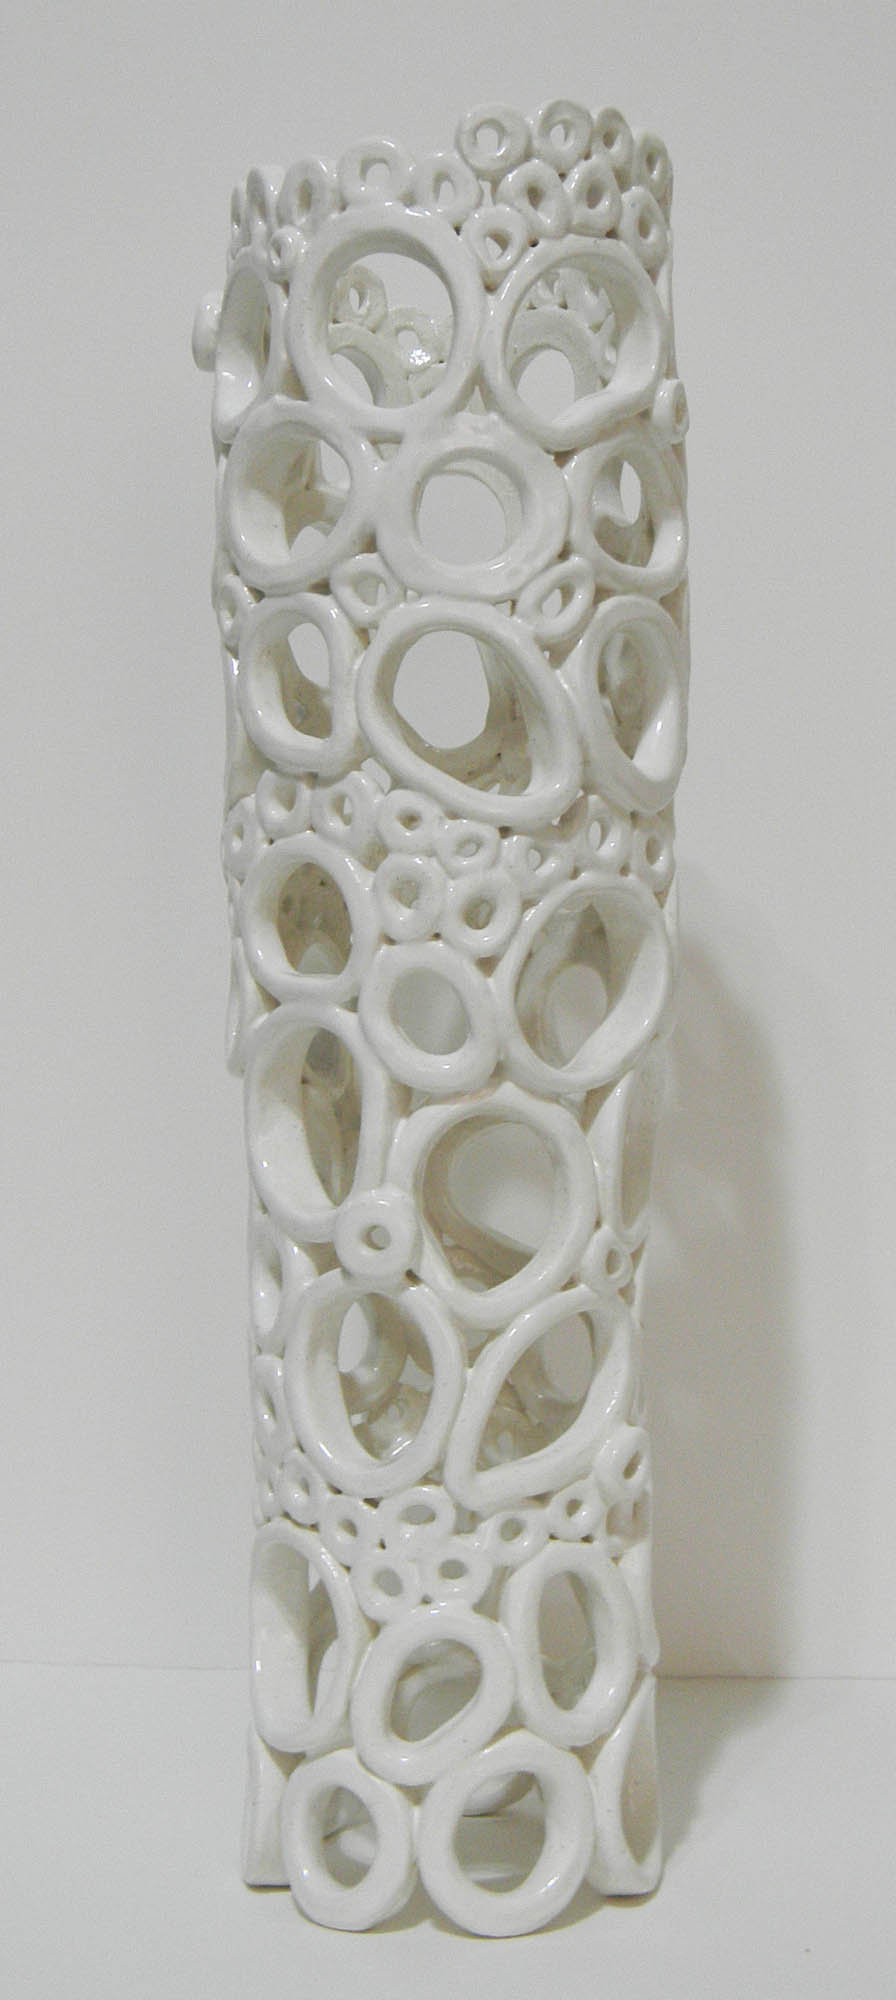 Ceramic Light - Ceramic Table Lamp - by Regina Farrell